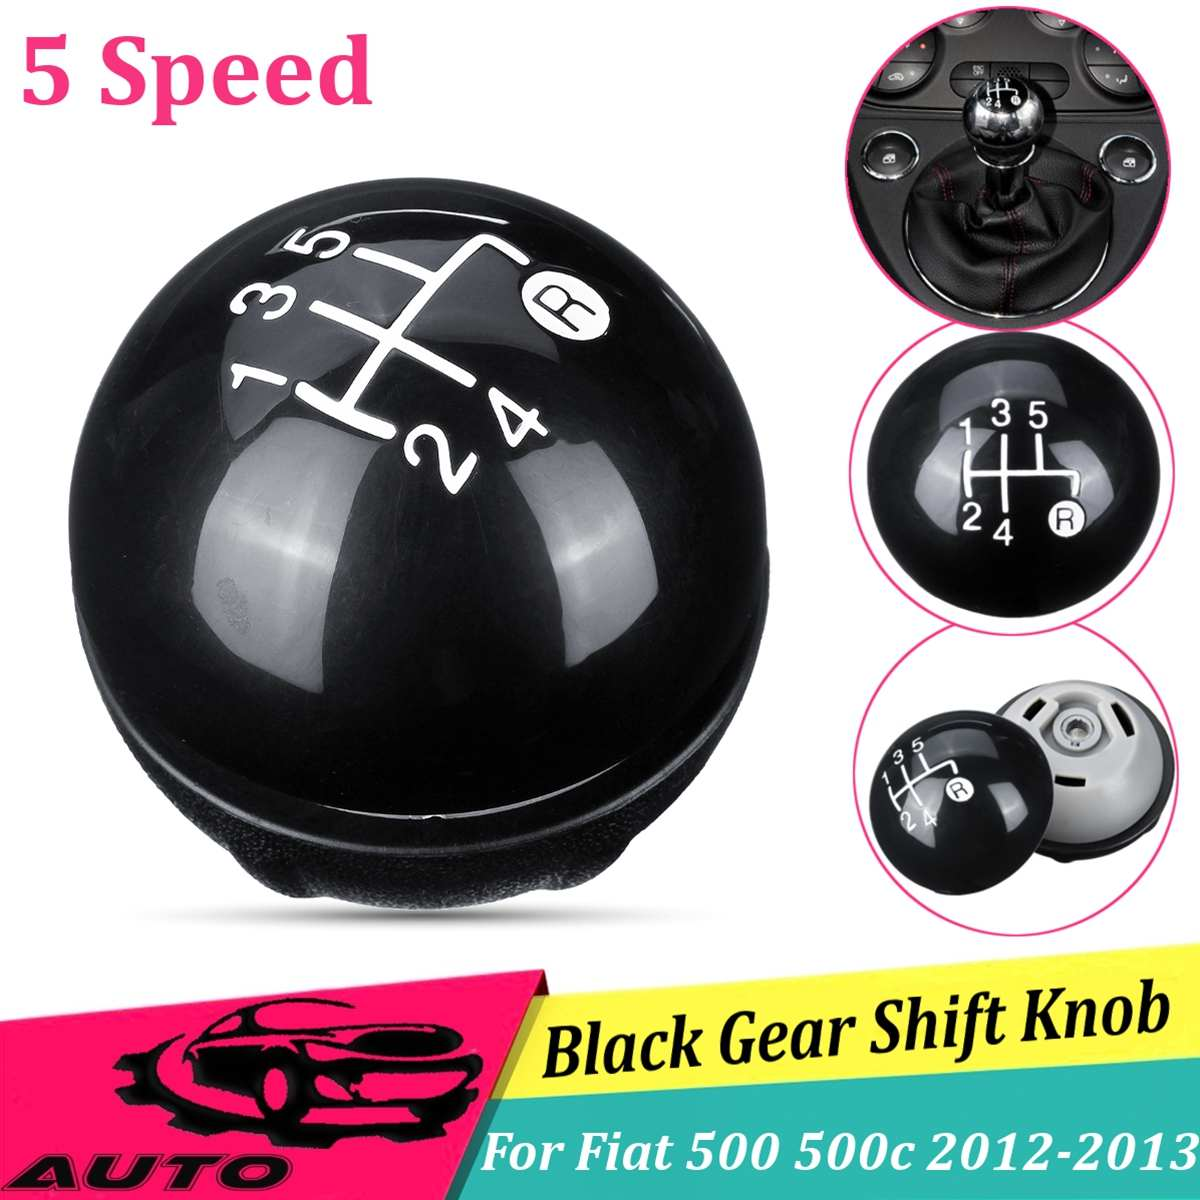 LETAOSK 5 Speed Gear Shift Knob Cover Cap Kit Fit for Fiat 500 500c 2012 2013#55344048